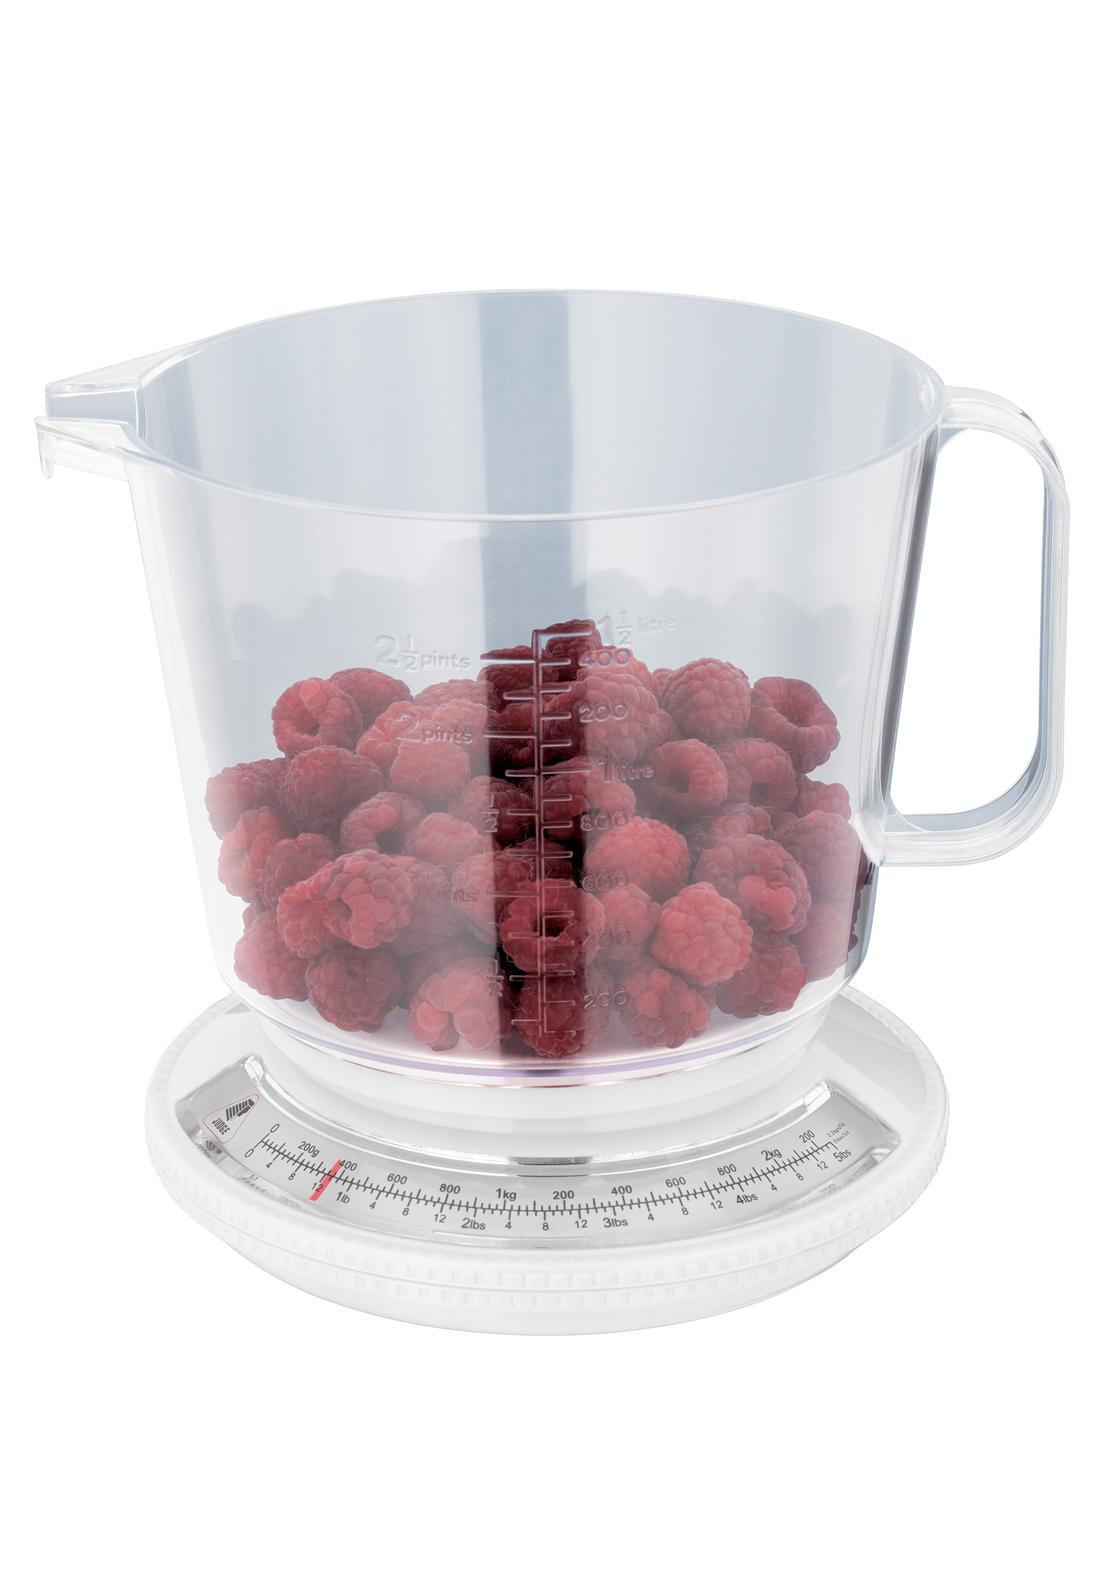 Judge 2.2kg Jug Kitchen Scales